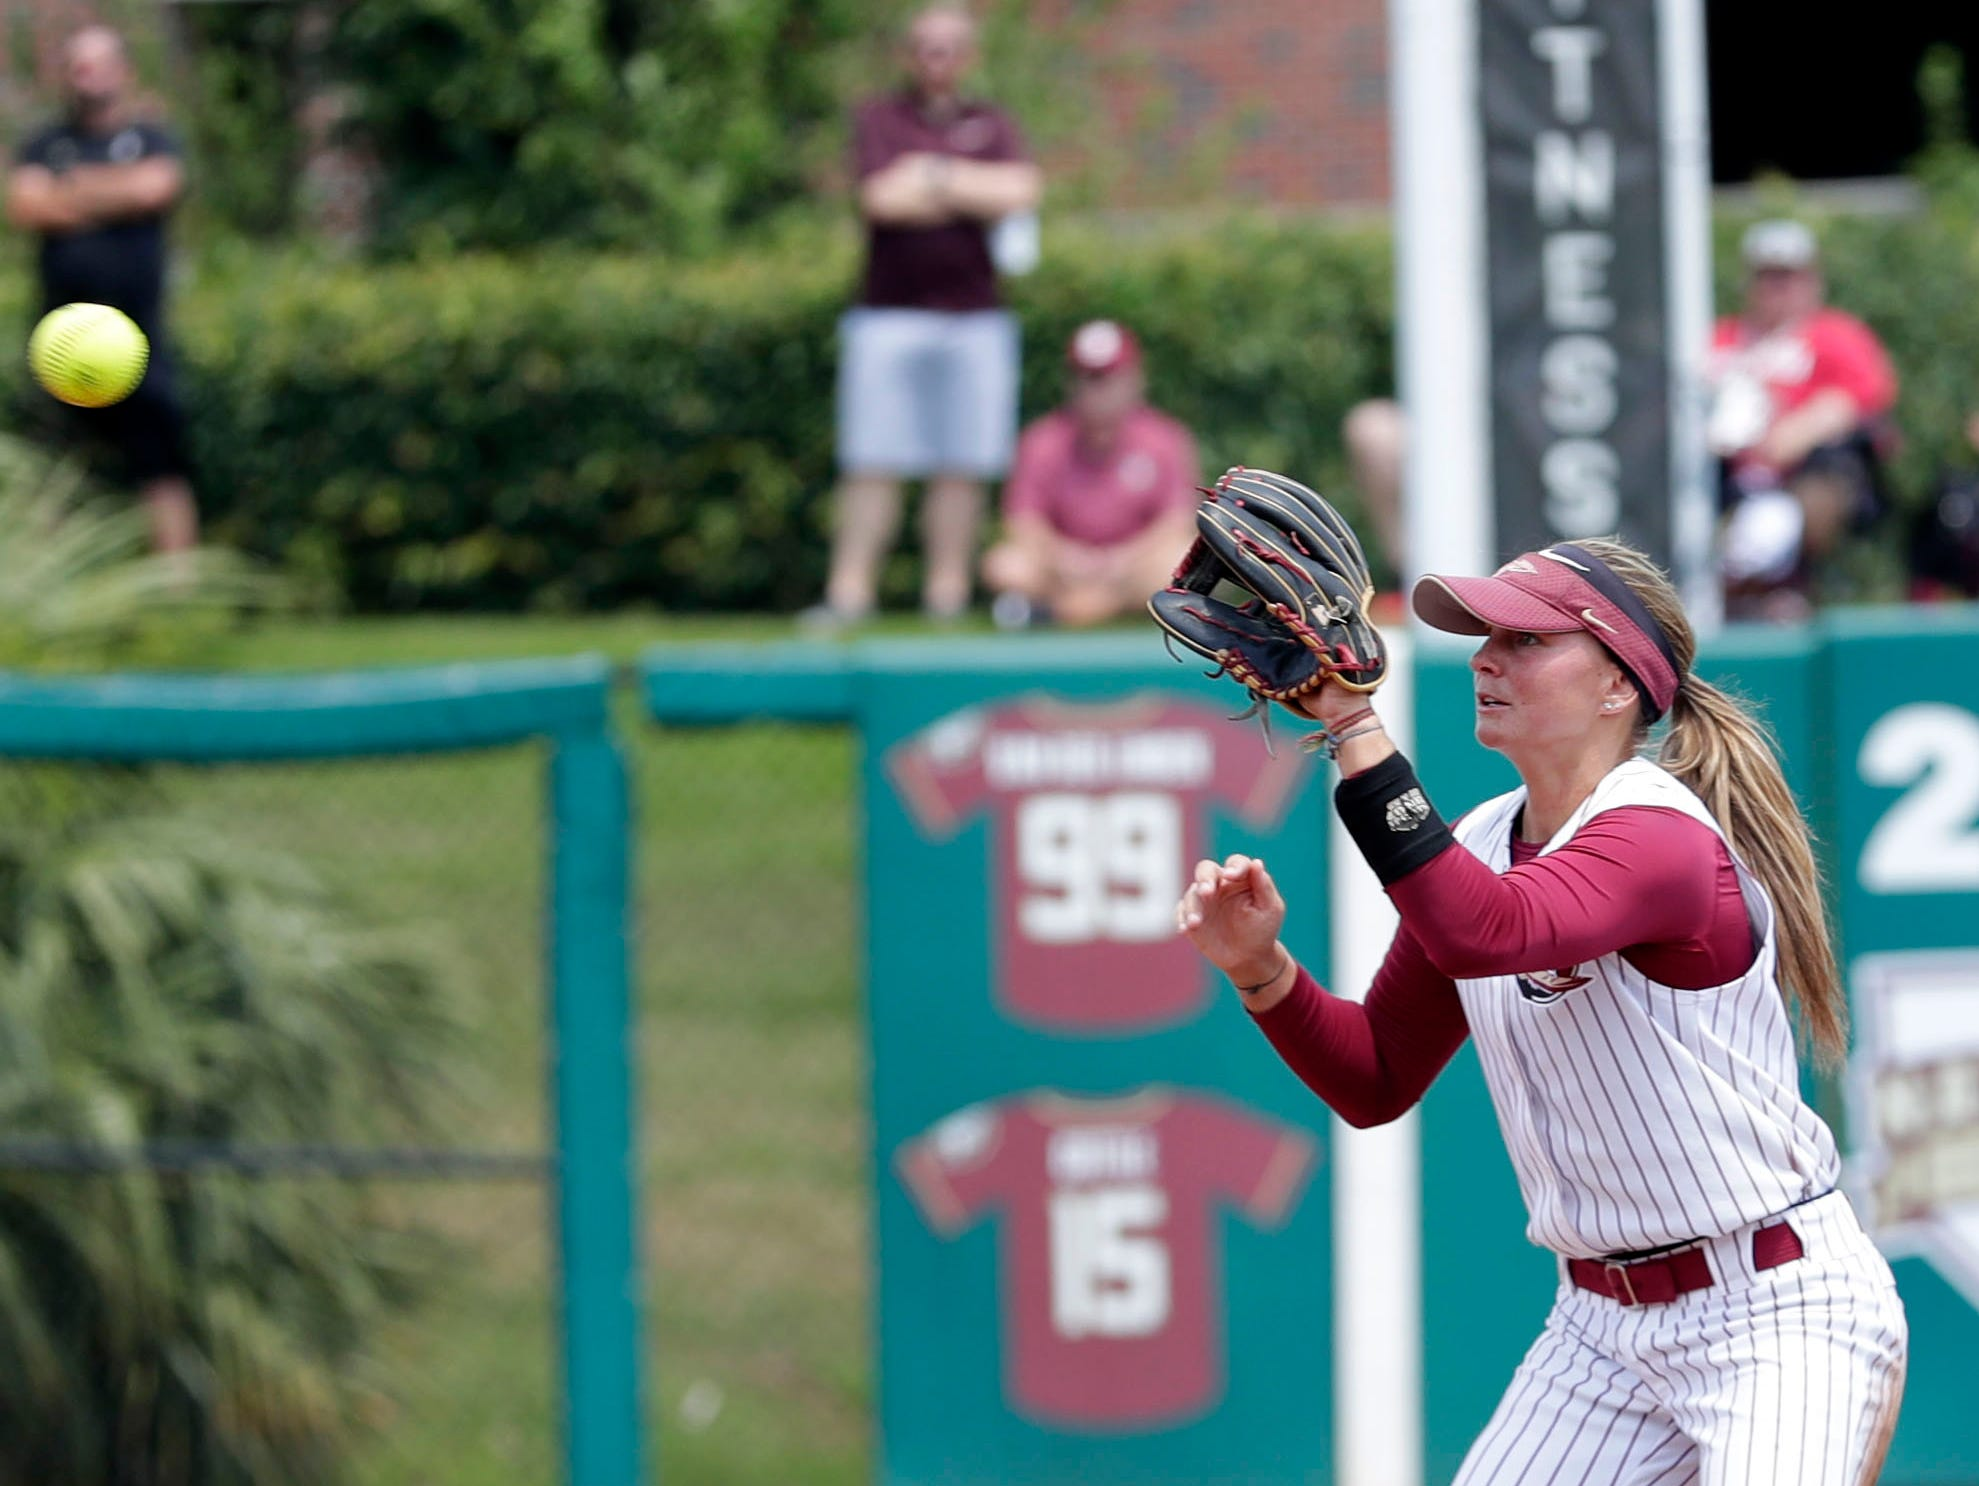 Florida State Seminoles infielder Cali Harrod (10) catches a throw from Florida State Seminoles utility player Sydney Sherrill (24) to get the out at second base. The Florida State Seminoles host the UNC Tar Heels for the ACC Softball Tournament finals Saturday, May 11, 2019.